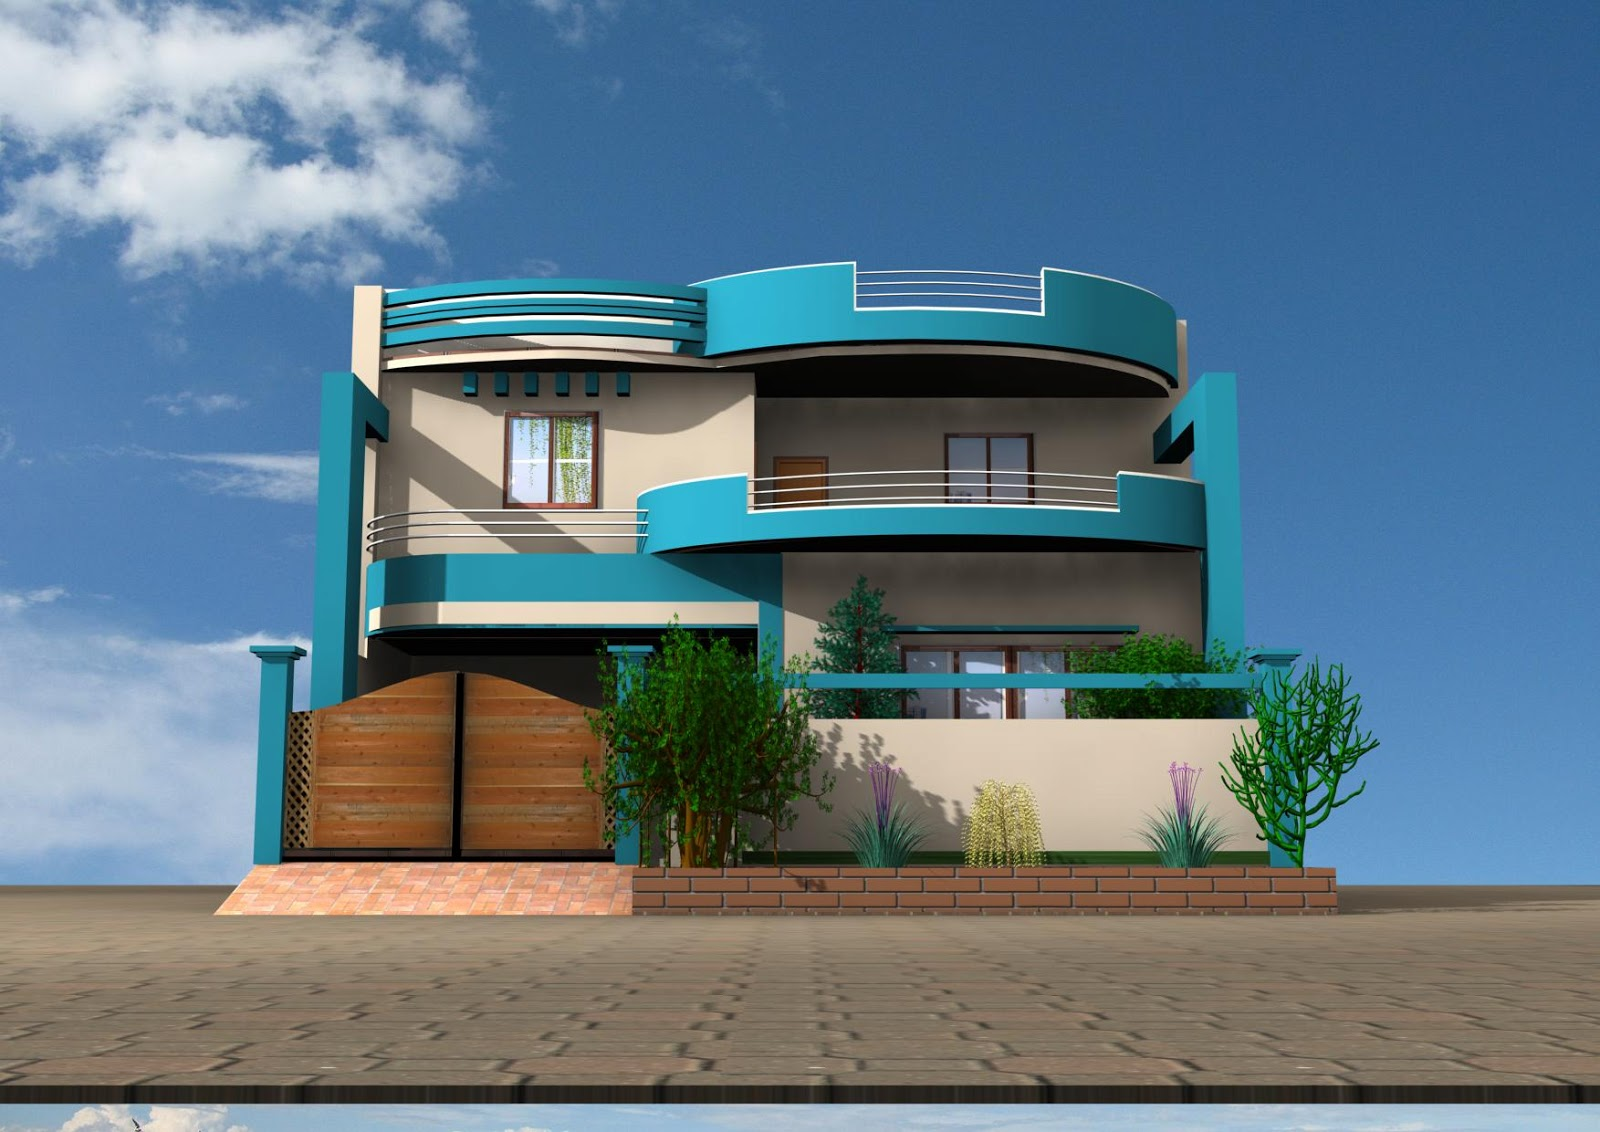 New home designs latest modern homes latest exterior for Front home design ideas